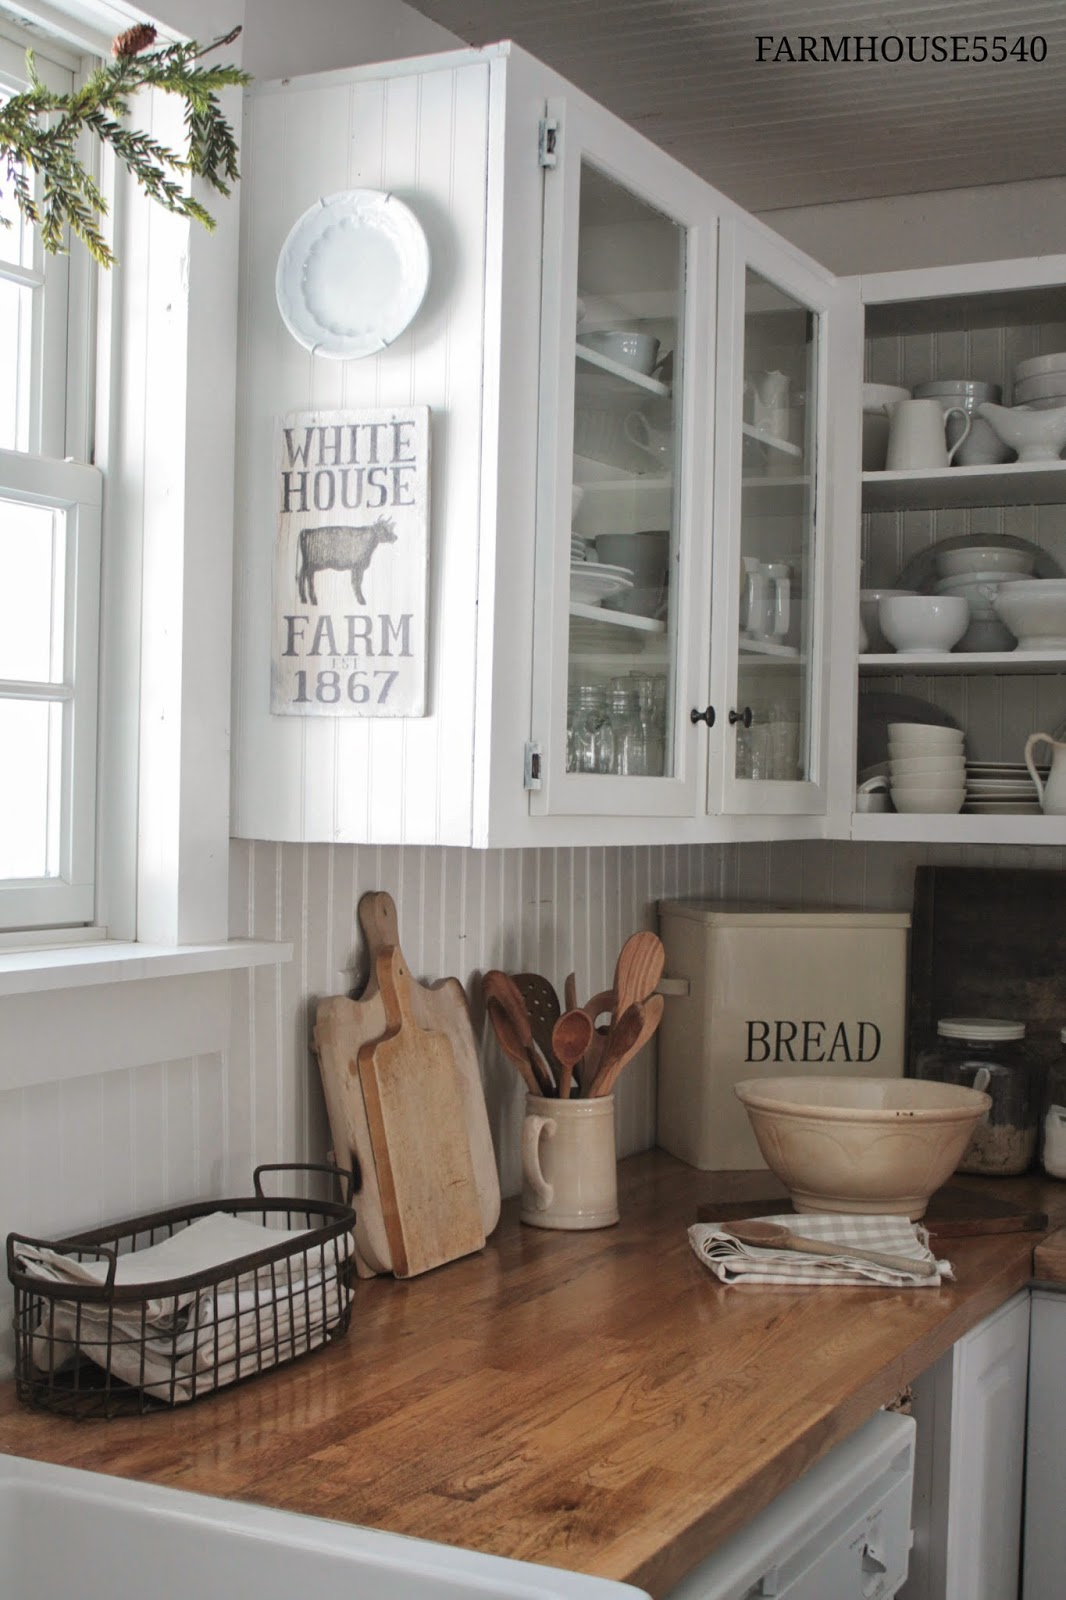 Check out these 7 Ideas for a Farmhouse Inspired Kitchen on country kitchen design ideas, country kitchen ceiling ideas, country kitchen cupboard ideas, country kitchen office ideas, country kitchen counter decor, country kitchen table ideas, country kitchen shelving ideas, country kitchen island ideas, country kitchen wall ideas, country kitchen decorating ideas, breakfast bar counter ideas, country kitchen tile ideas, country kitchen lighting ideas, country kitchen sink ideas, country kitchen paint ideas, country kitchen bar ideas, country kitchen window ideas, breakfast nook counter ideas,